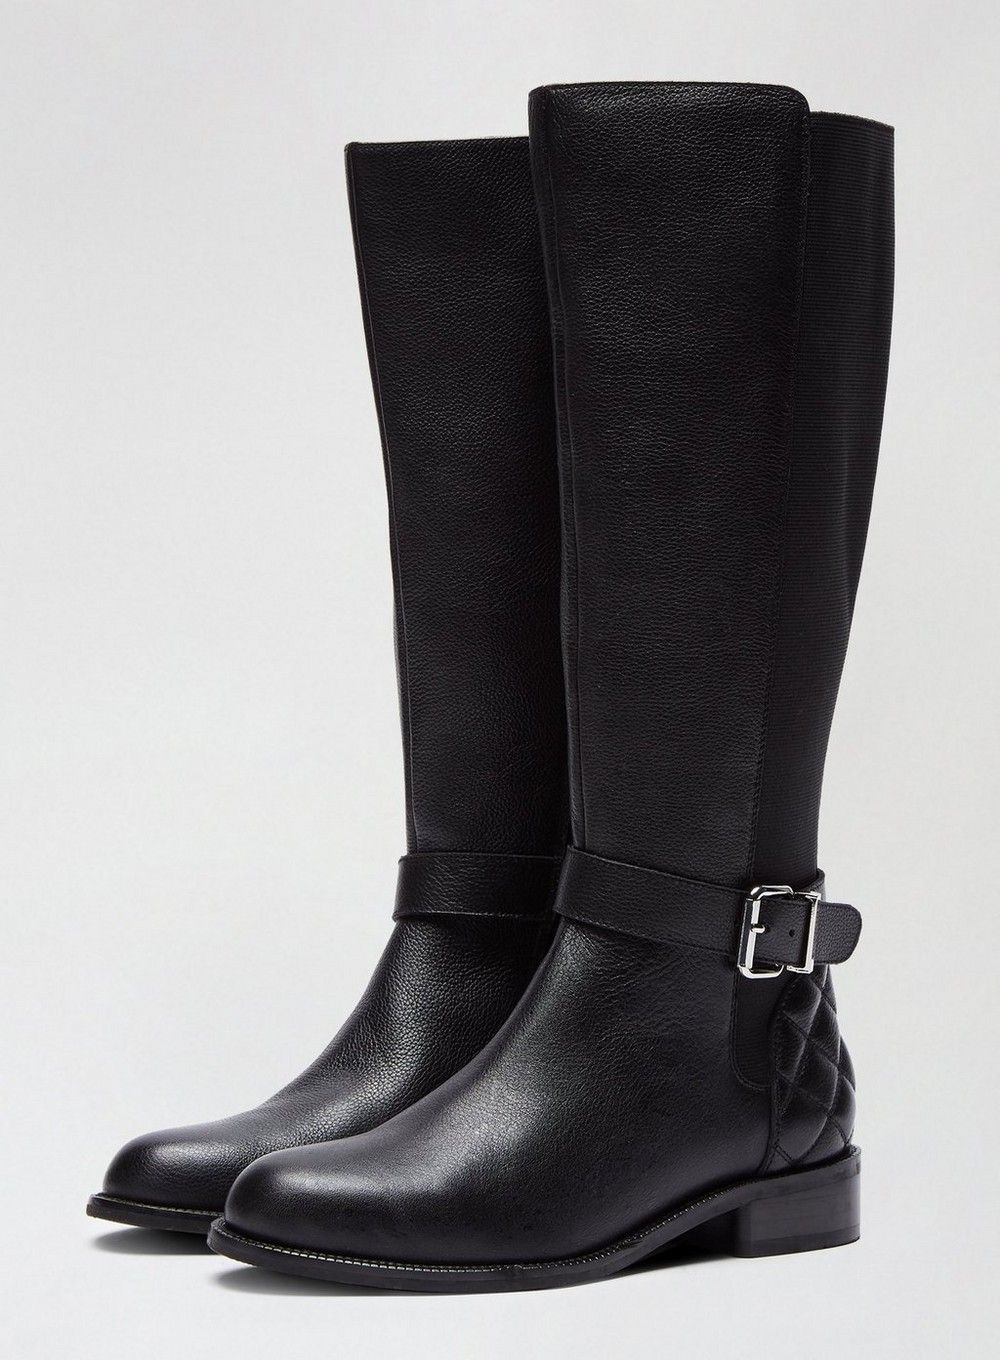 Dorothy Perkins Womens Black Opera Leather Boots Flats Winter Shoes Comfort